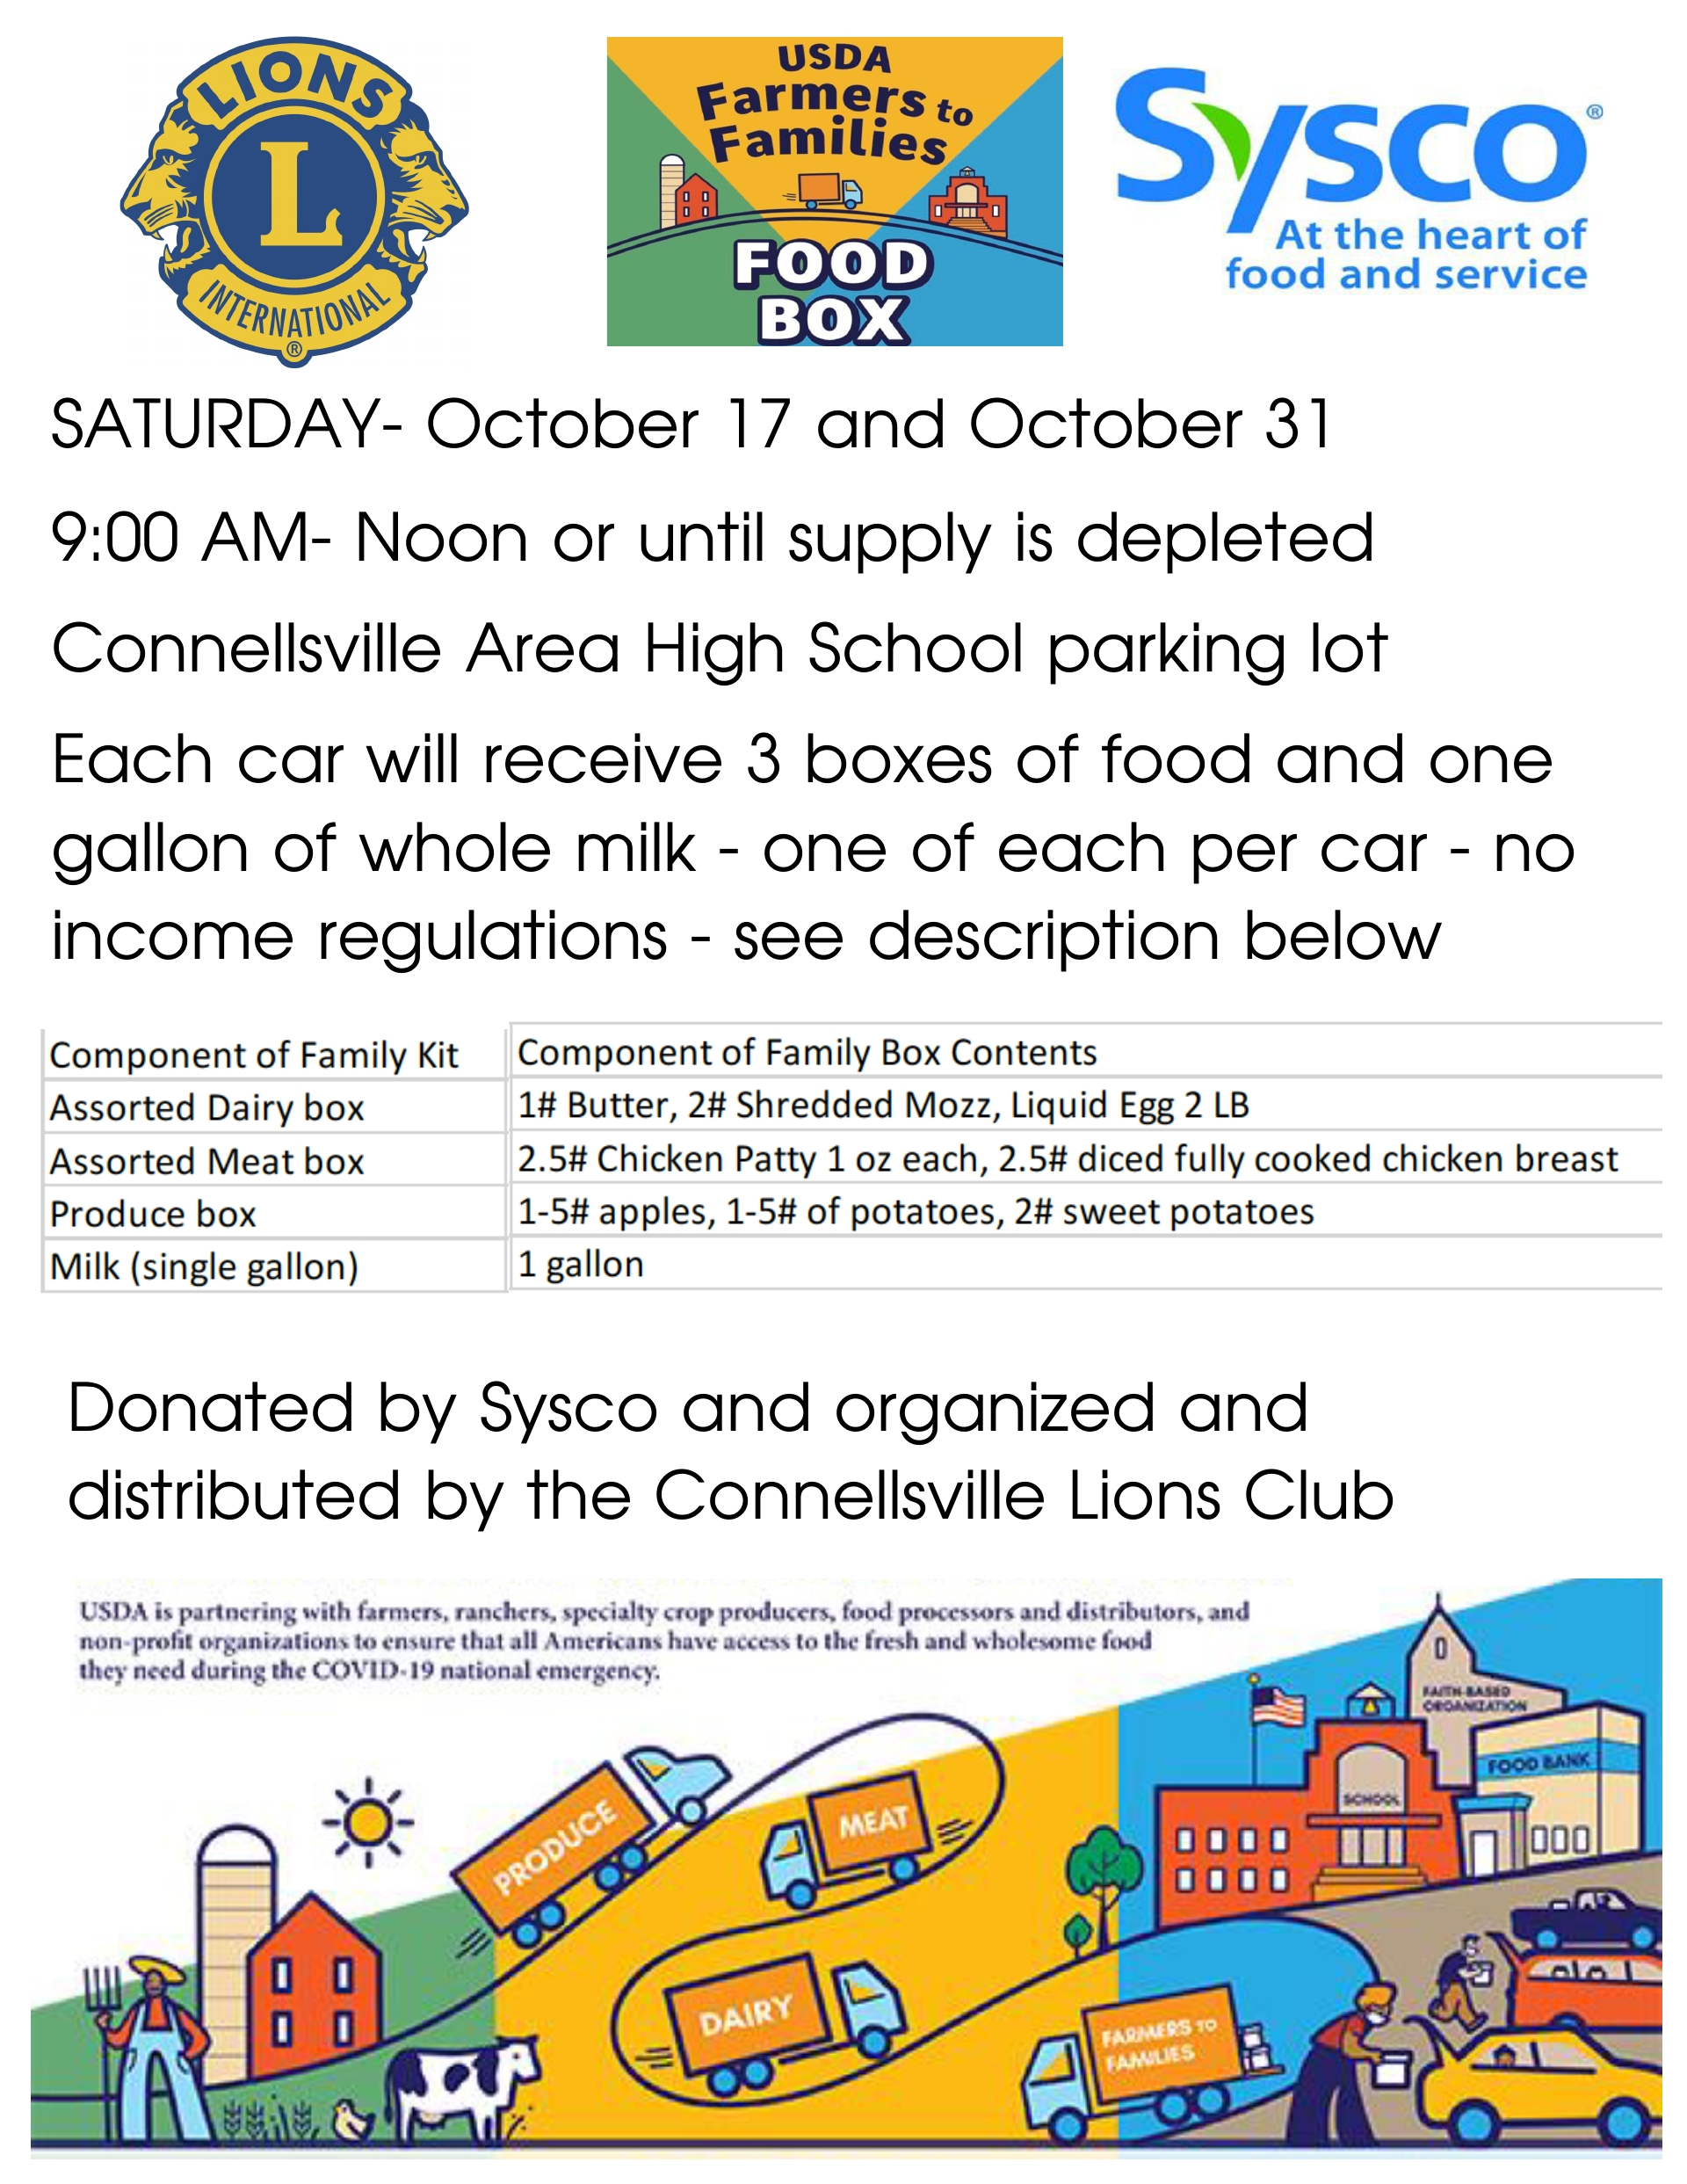 Food Boxes for Families Connellsville HS October 17 & 31, 9 am to noon!